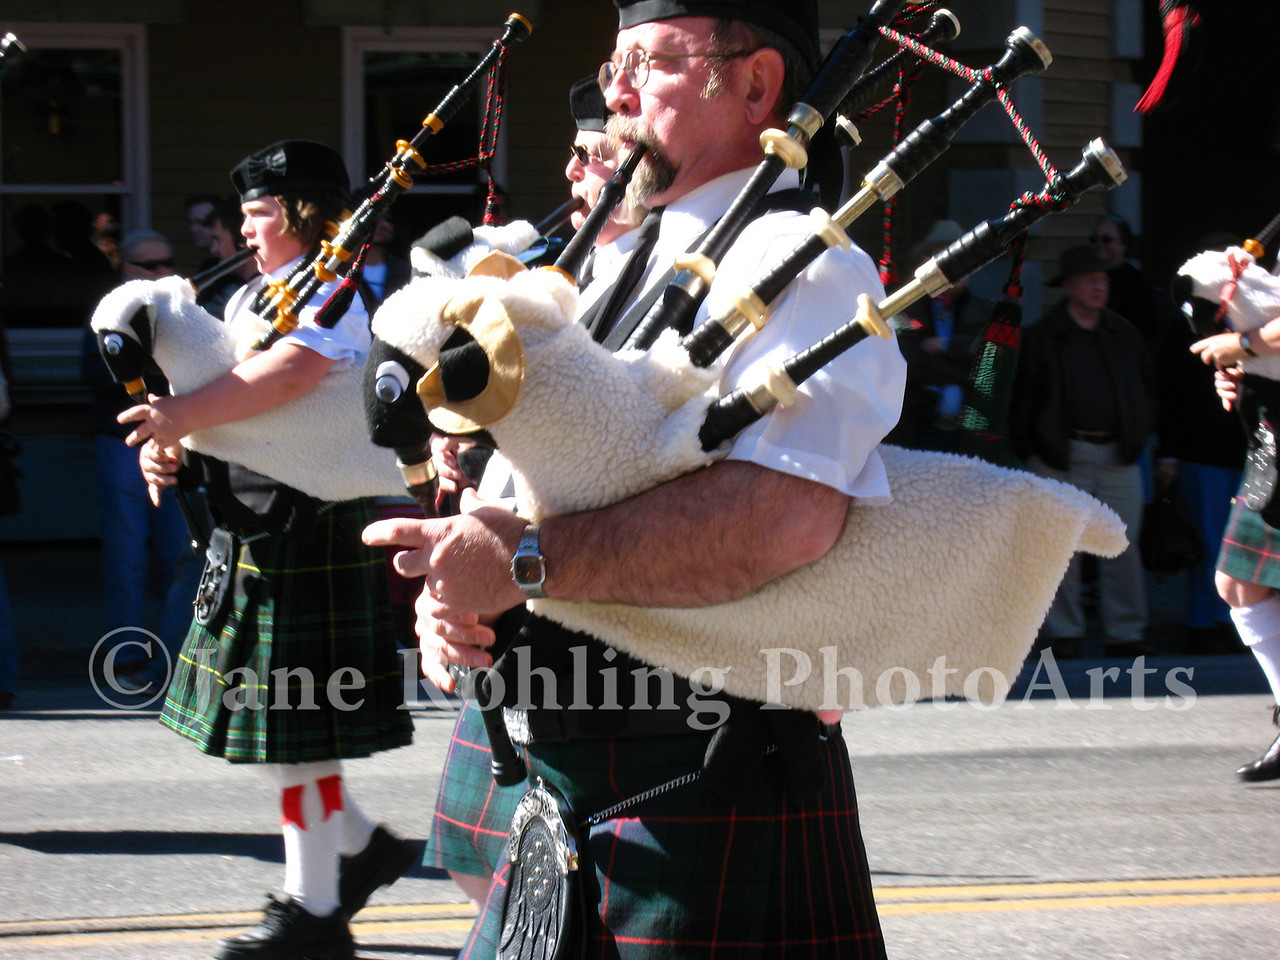 Bagpipers dress their instruments for the occasion during the Trailing of the Sheep Festival parade, Ketchum, Idaho.